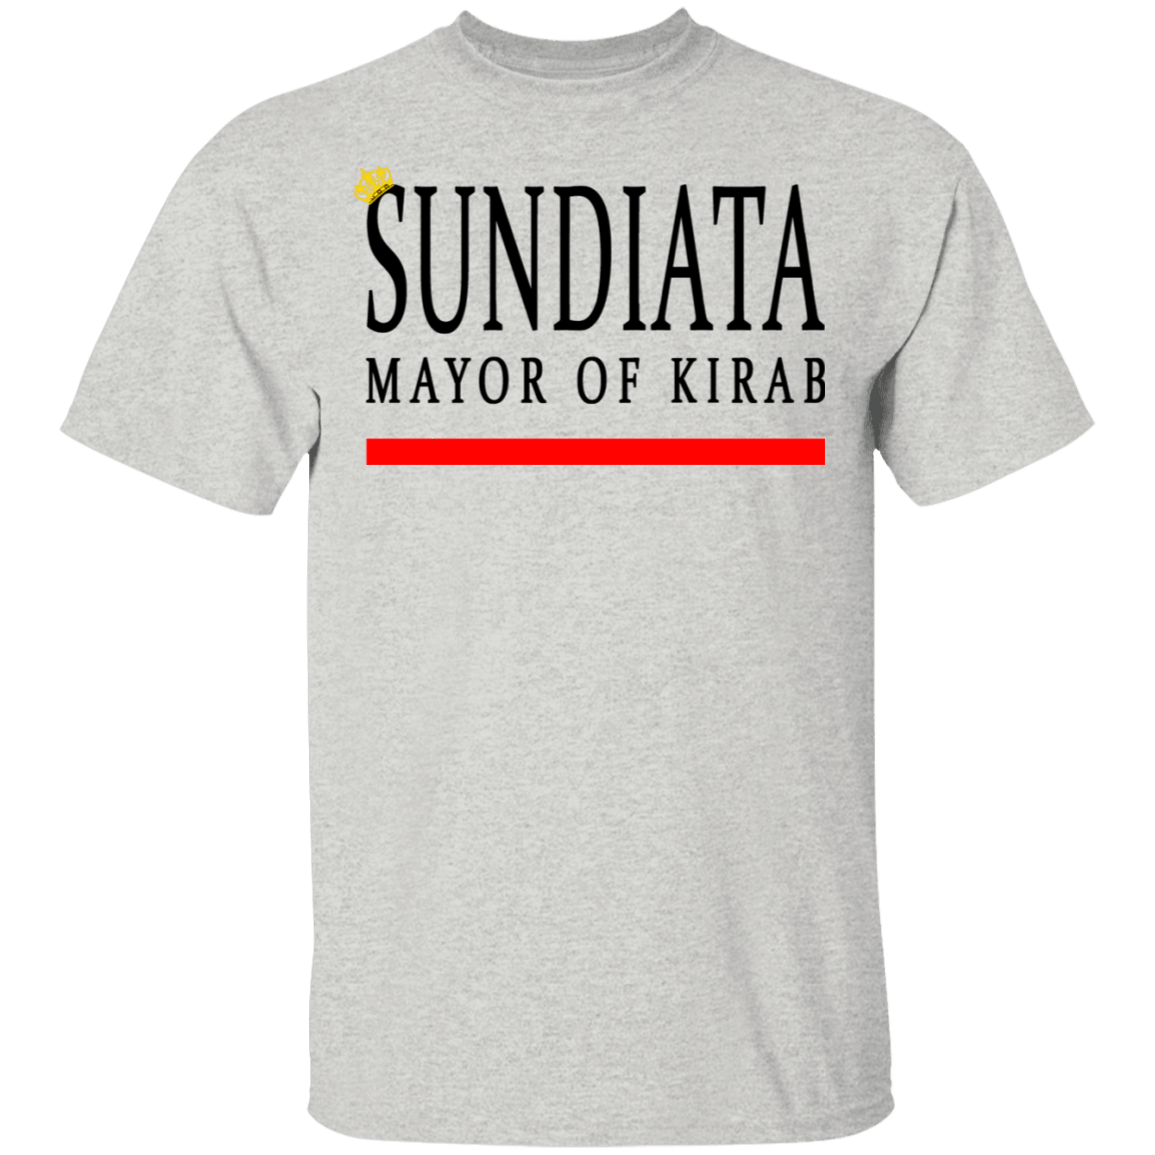 Sundiata Mayor Of Kirab T-Shirts, Hoodies, Tank 22-2475-79999094-12568 - Tee Ript